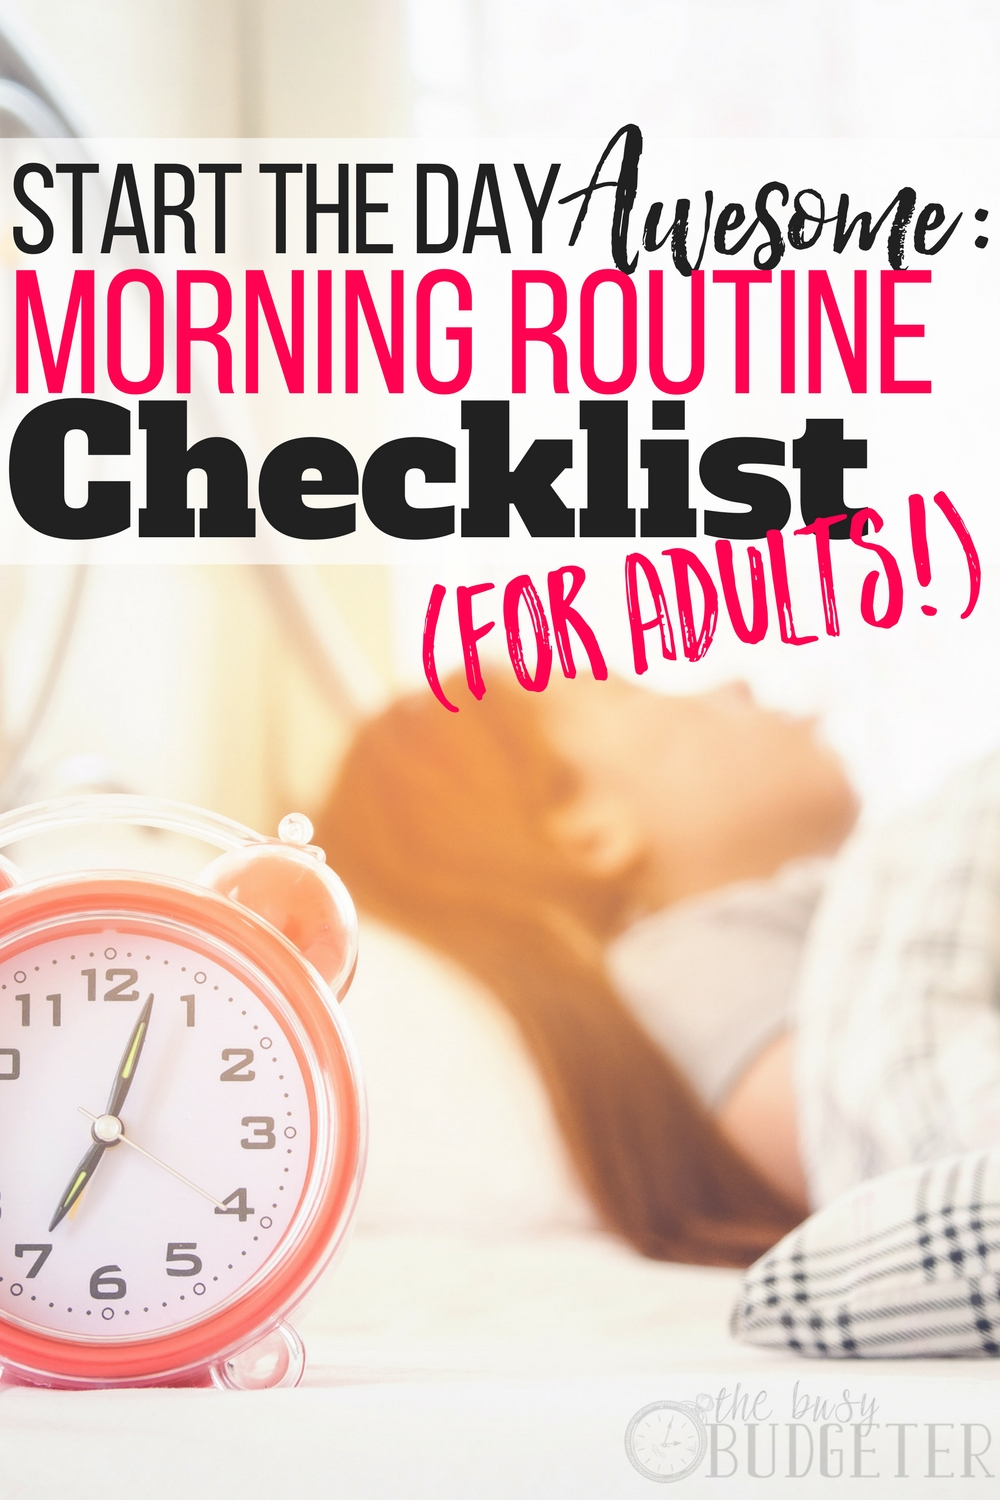 Yes! Creating a morning routine that actually works is such a struggle. This article gave me a step-by-step morning routine checklist for adults to help me develop and stick to a routine. Awesome!